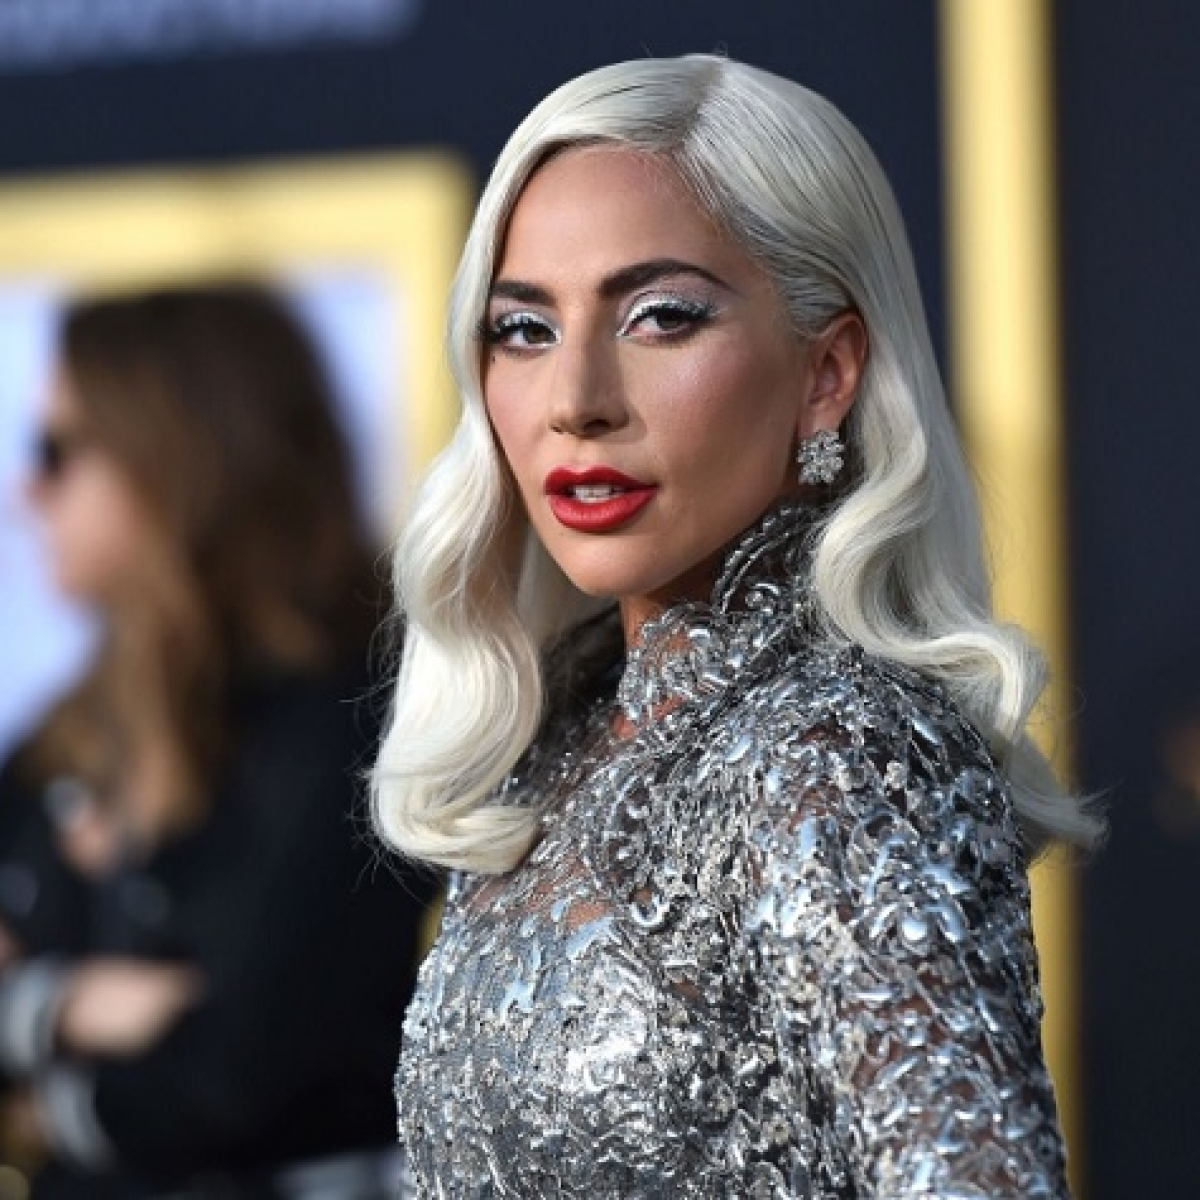 Lady Gaga's sixth album 'Chromatica' to release on May 29